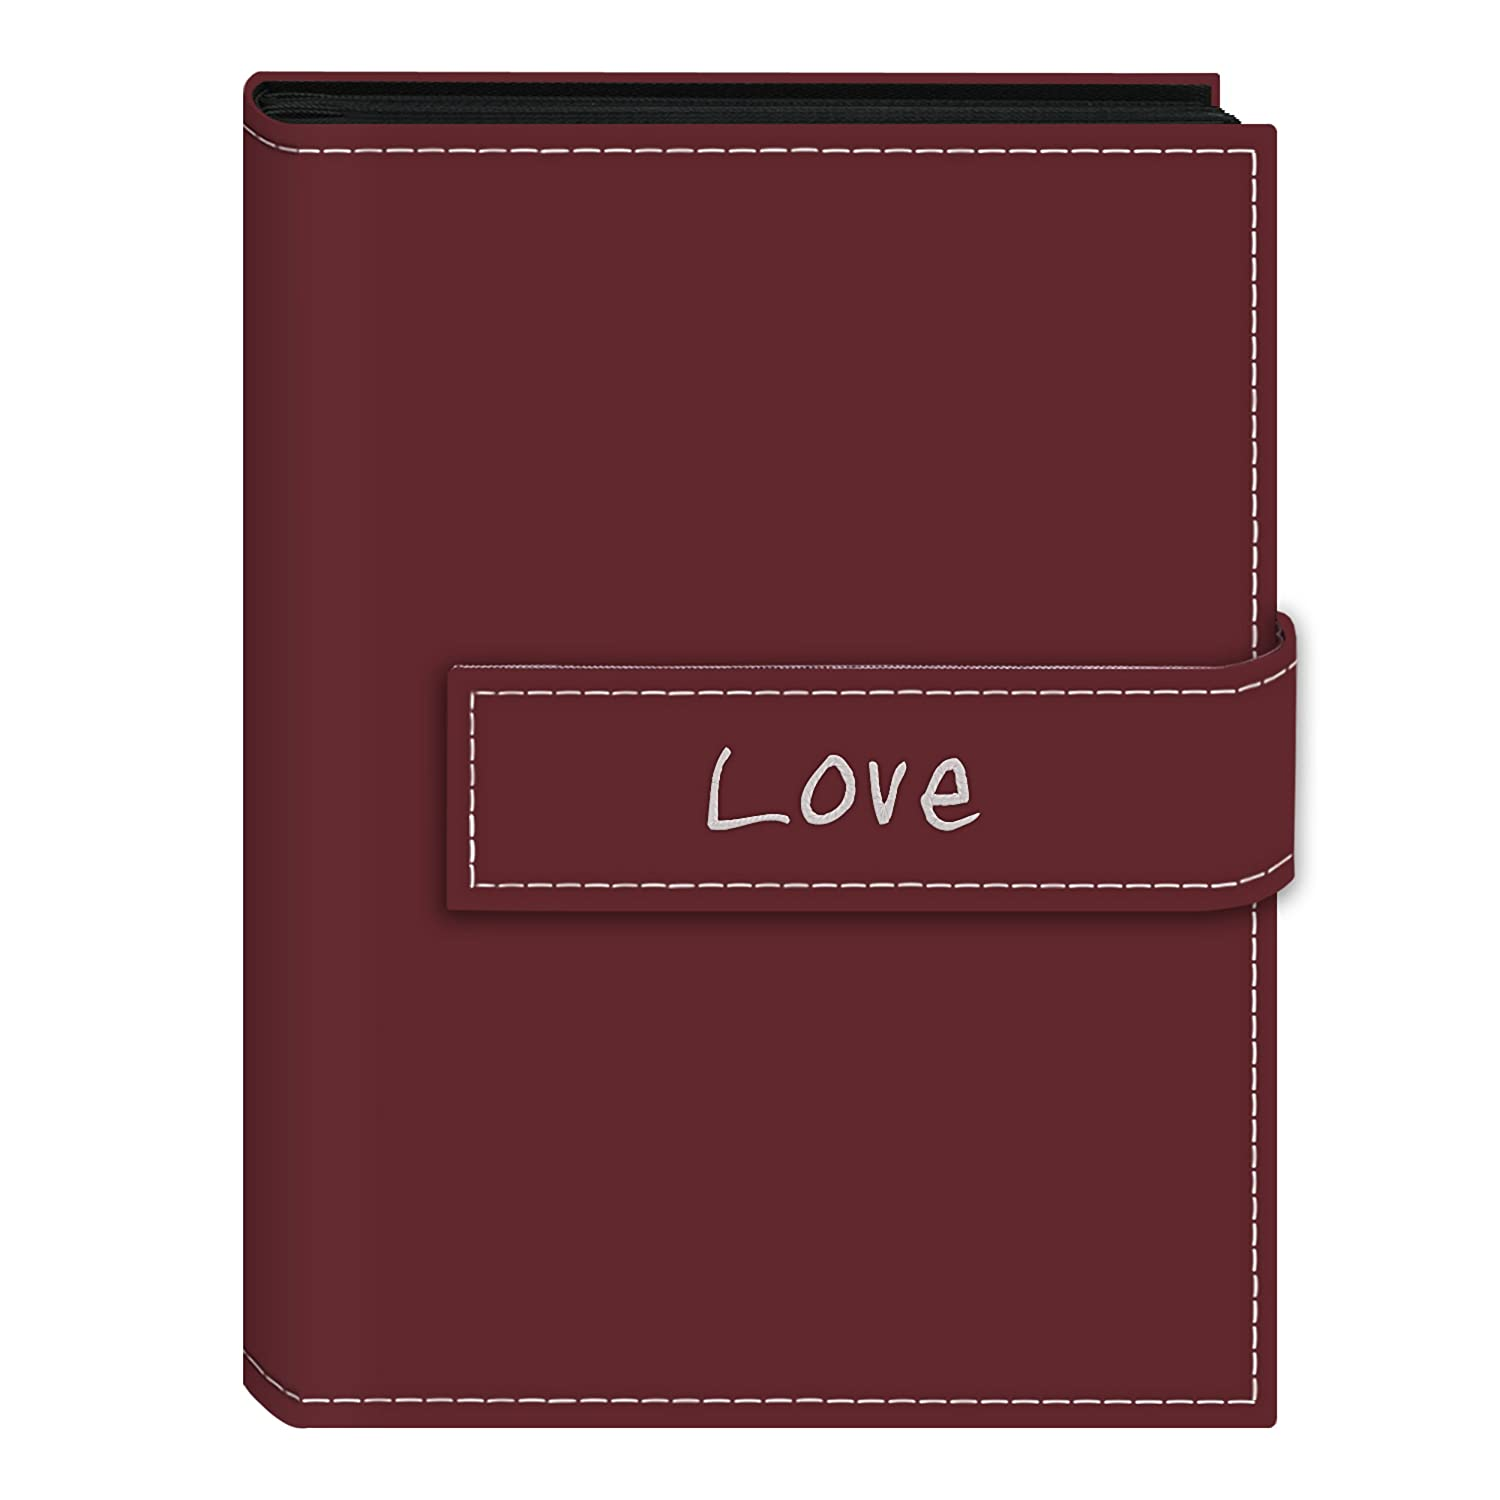 Pioneer Photo Albums 36-Pocket 5 by 7-Inch Embroidered Love Strap Sewn Leatherette Cover Photo Album, Mini, Burgundy EXP-57/BL